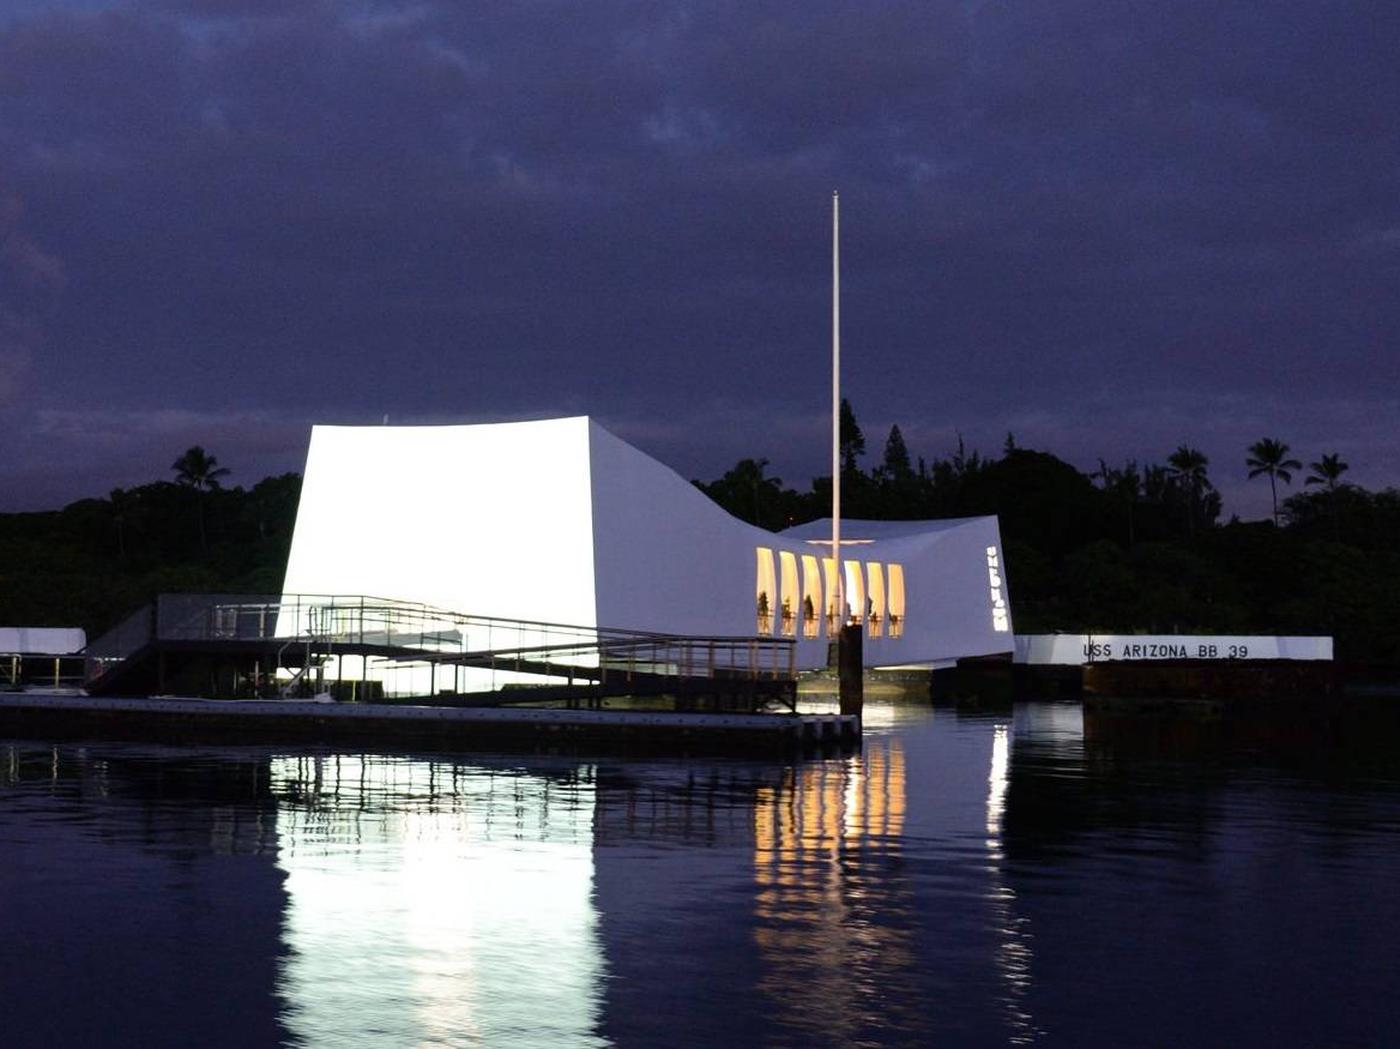 A view of the USS Arizona Memorial in the evening